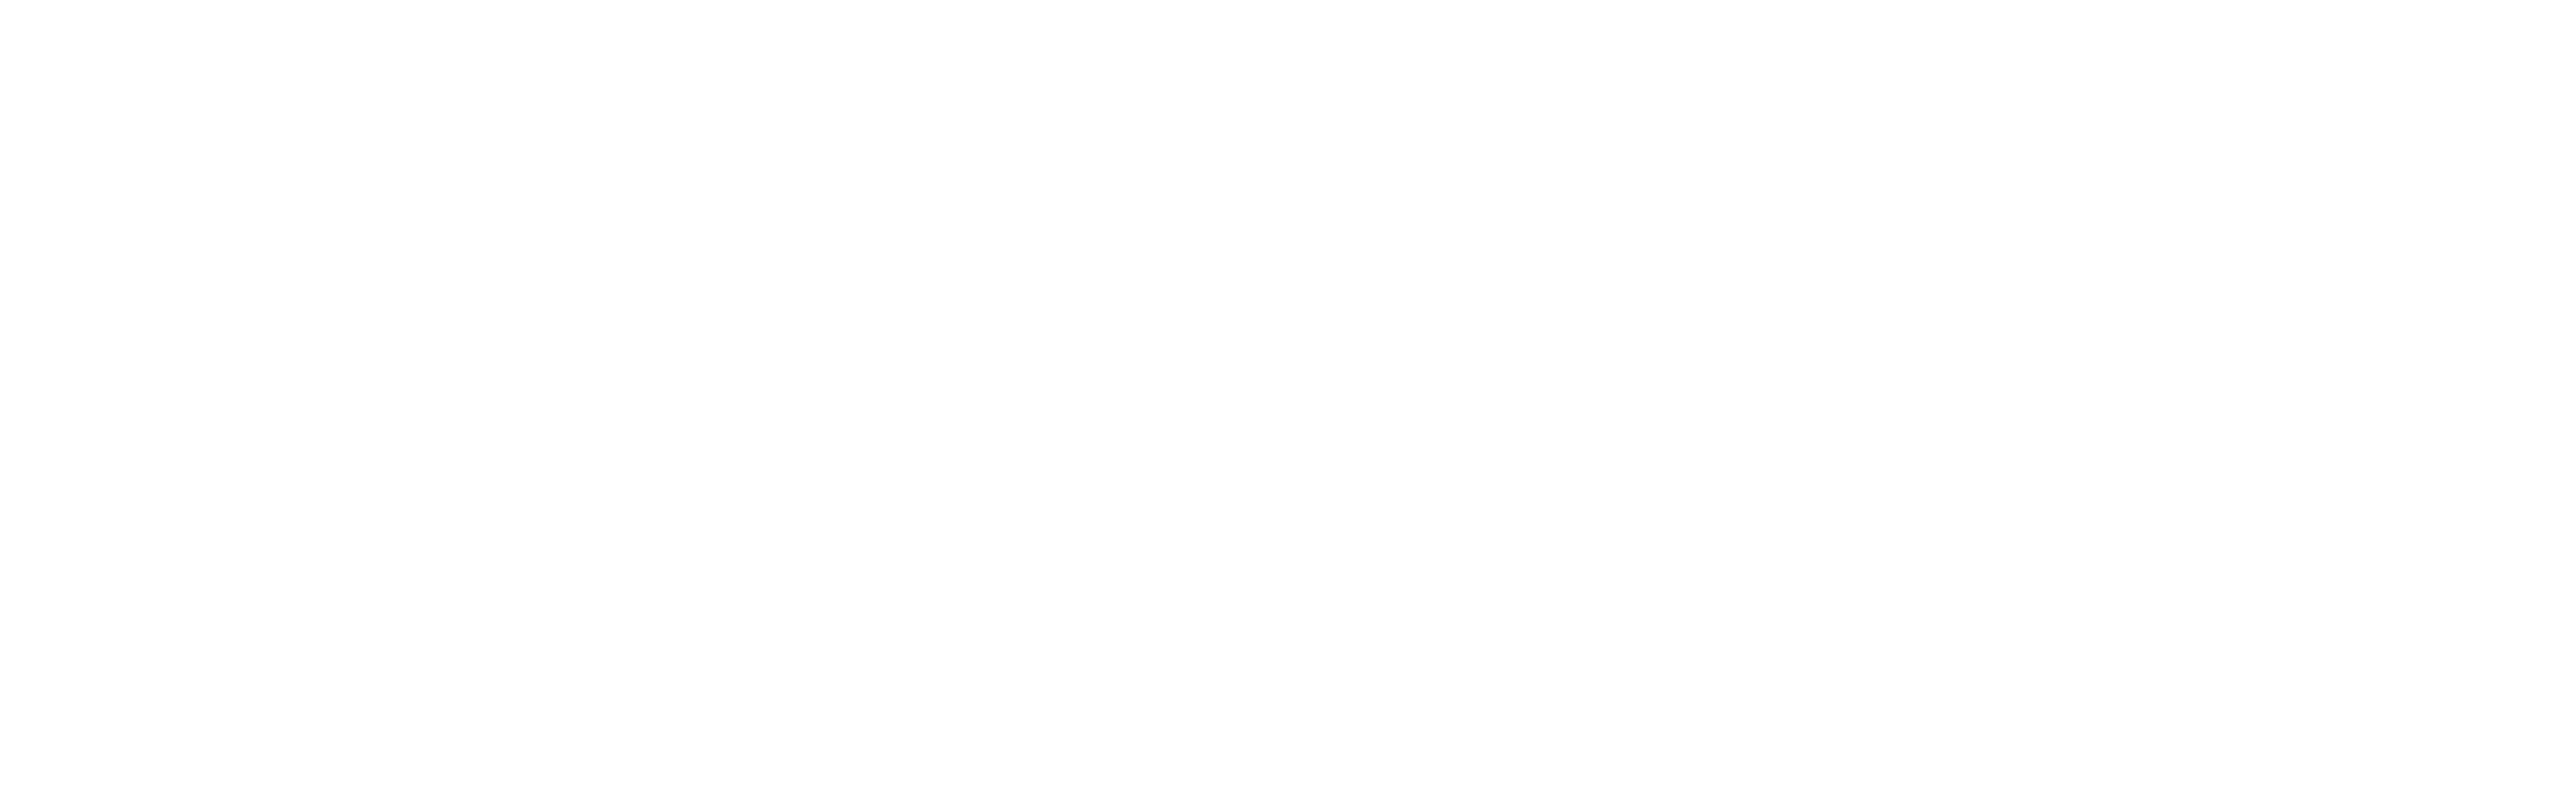 Brenda's Flowers and Gifts - Flower Delivery in Maquoketa, IA